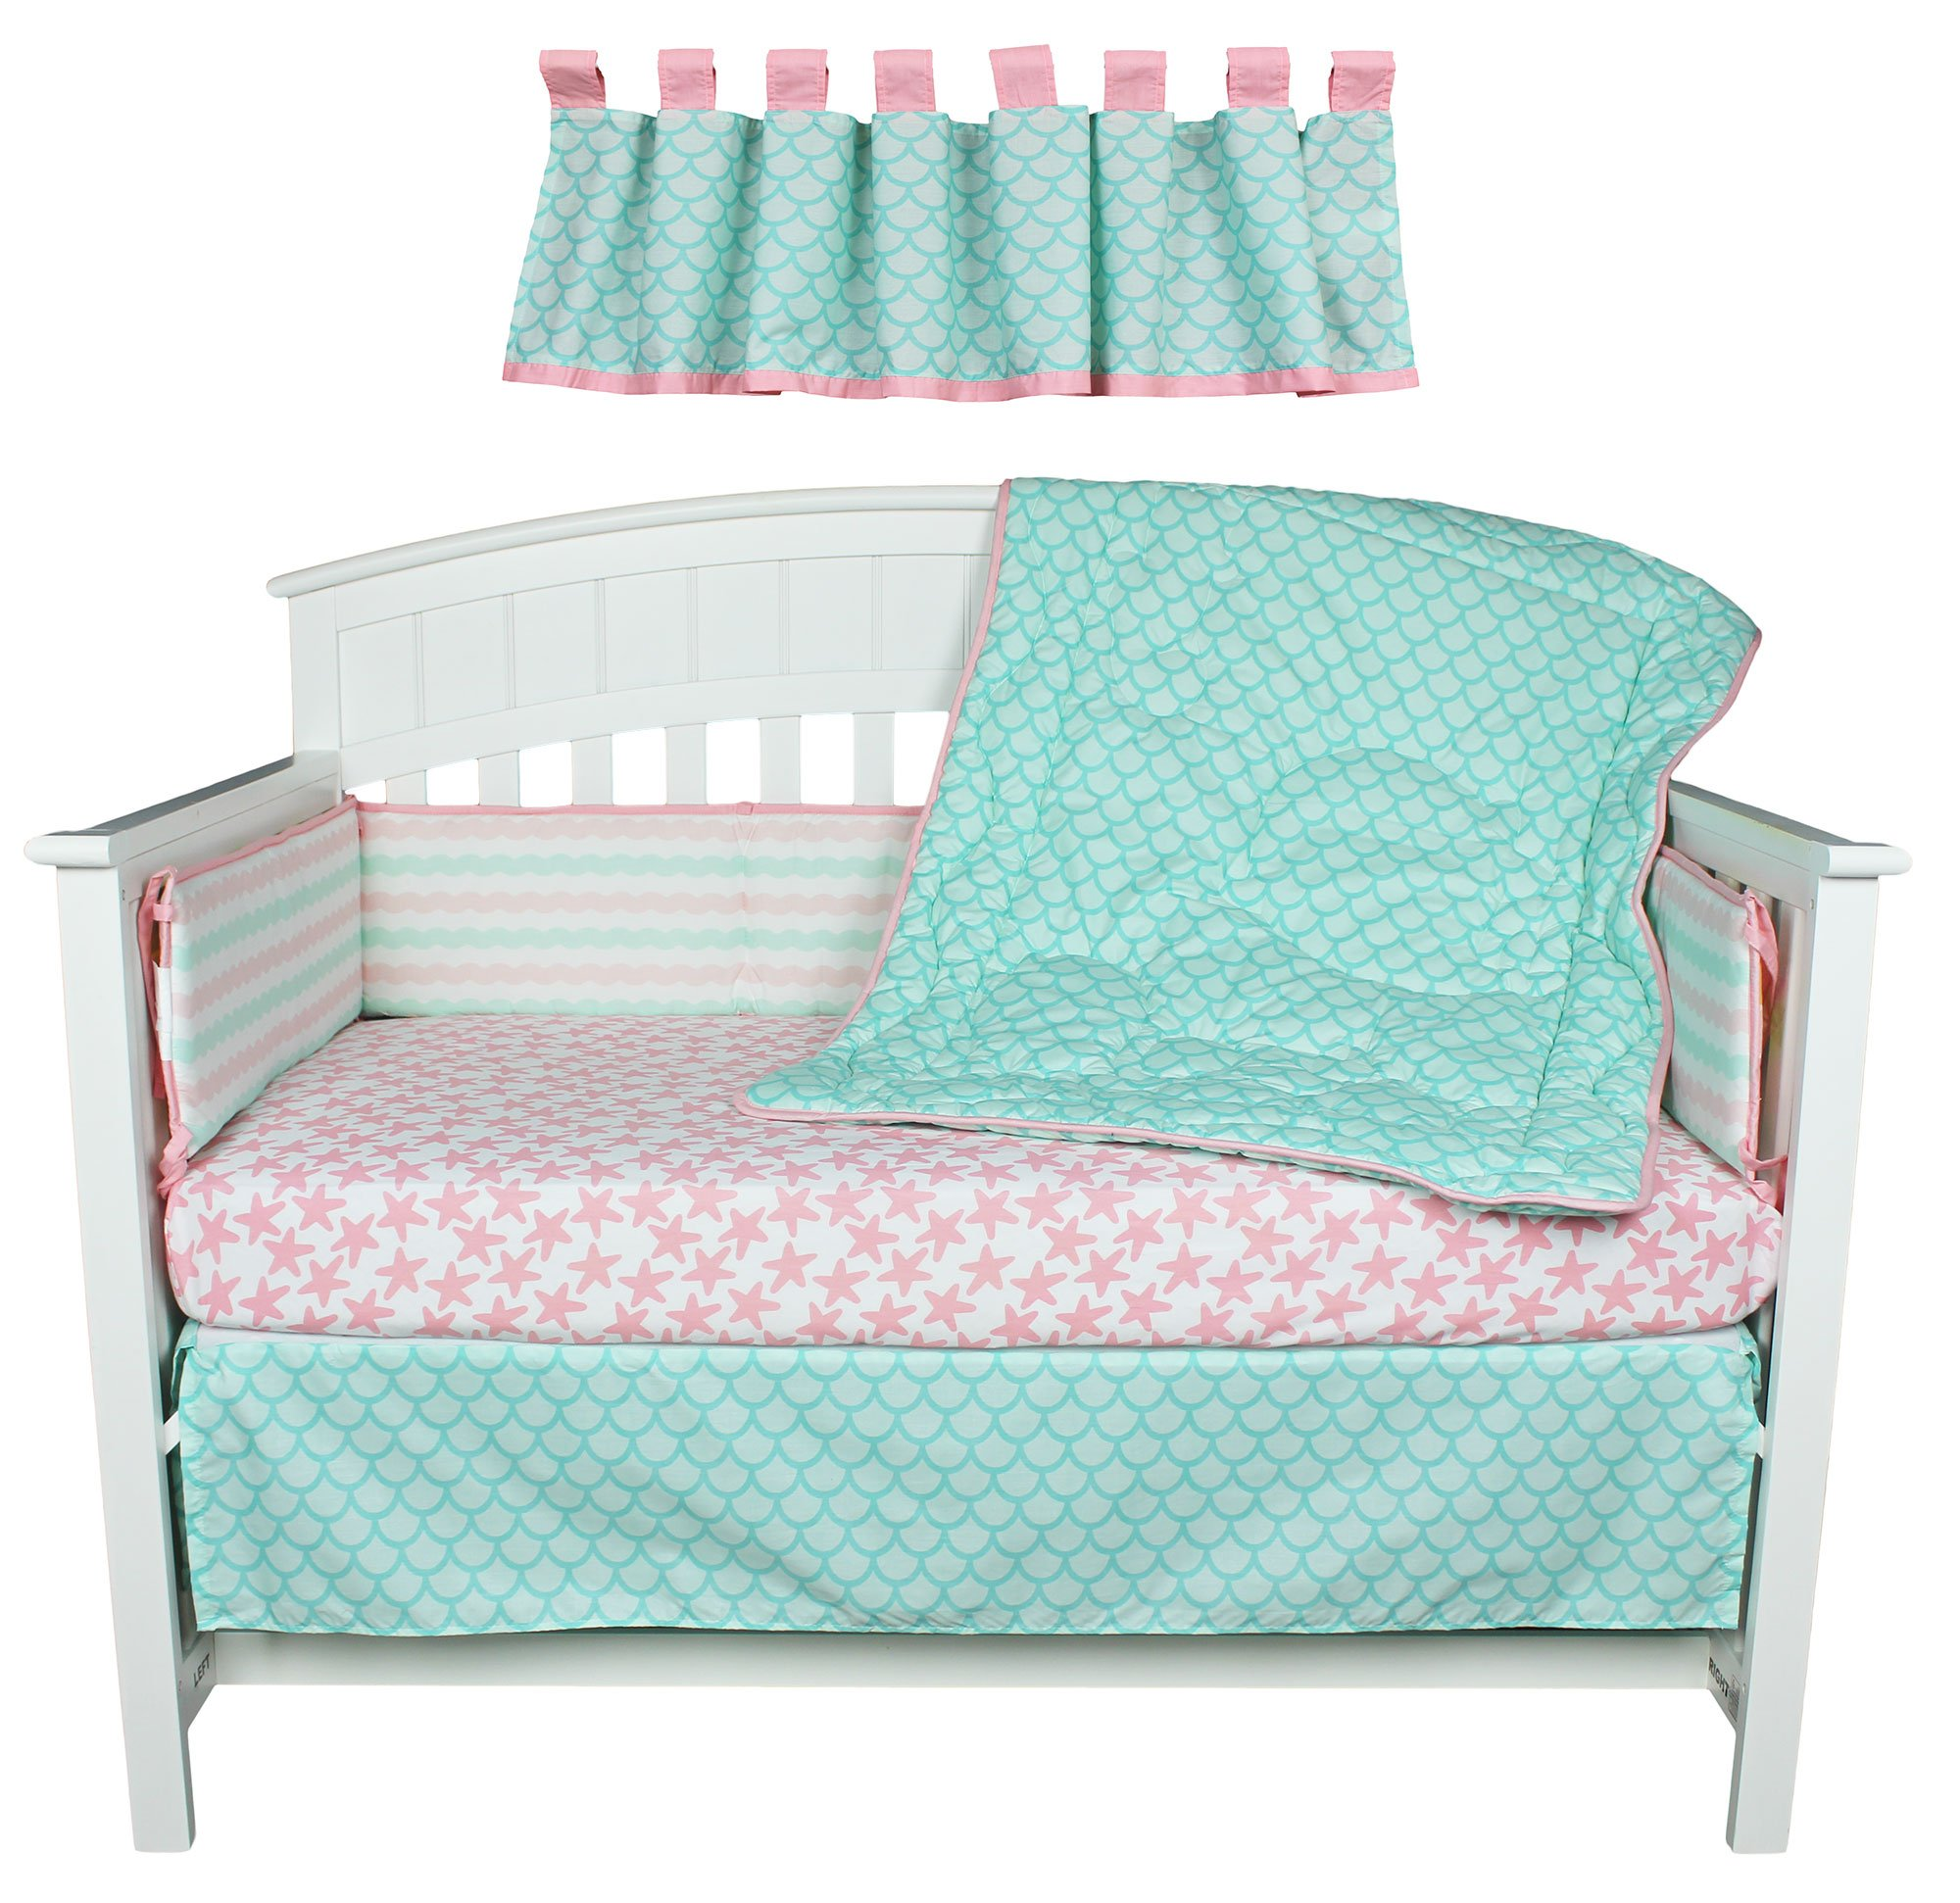 Sea Sweeties Pink and Blue Ocean 5 Piece Baby Girl Crib Bedding with Bumper by Belle by Belle (Image #3)